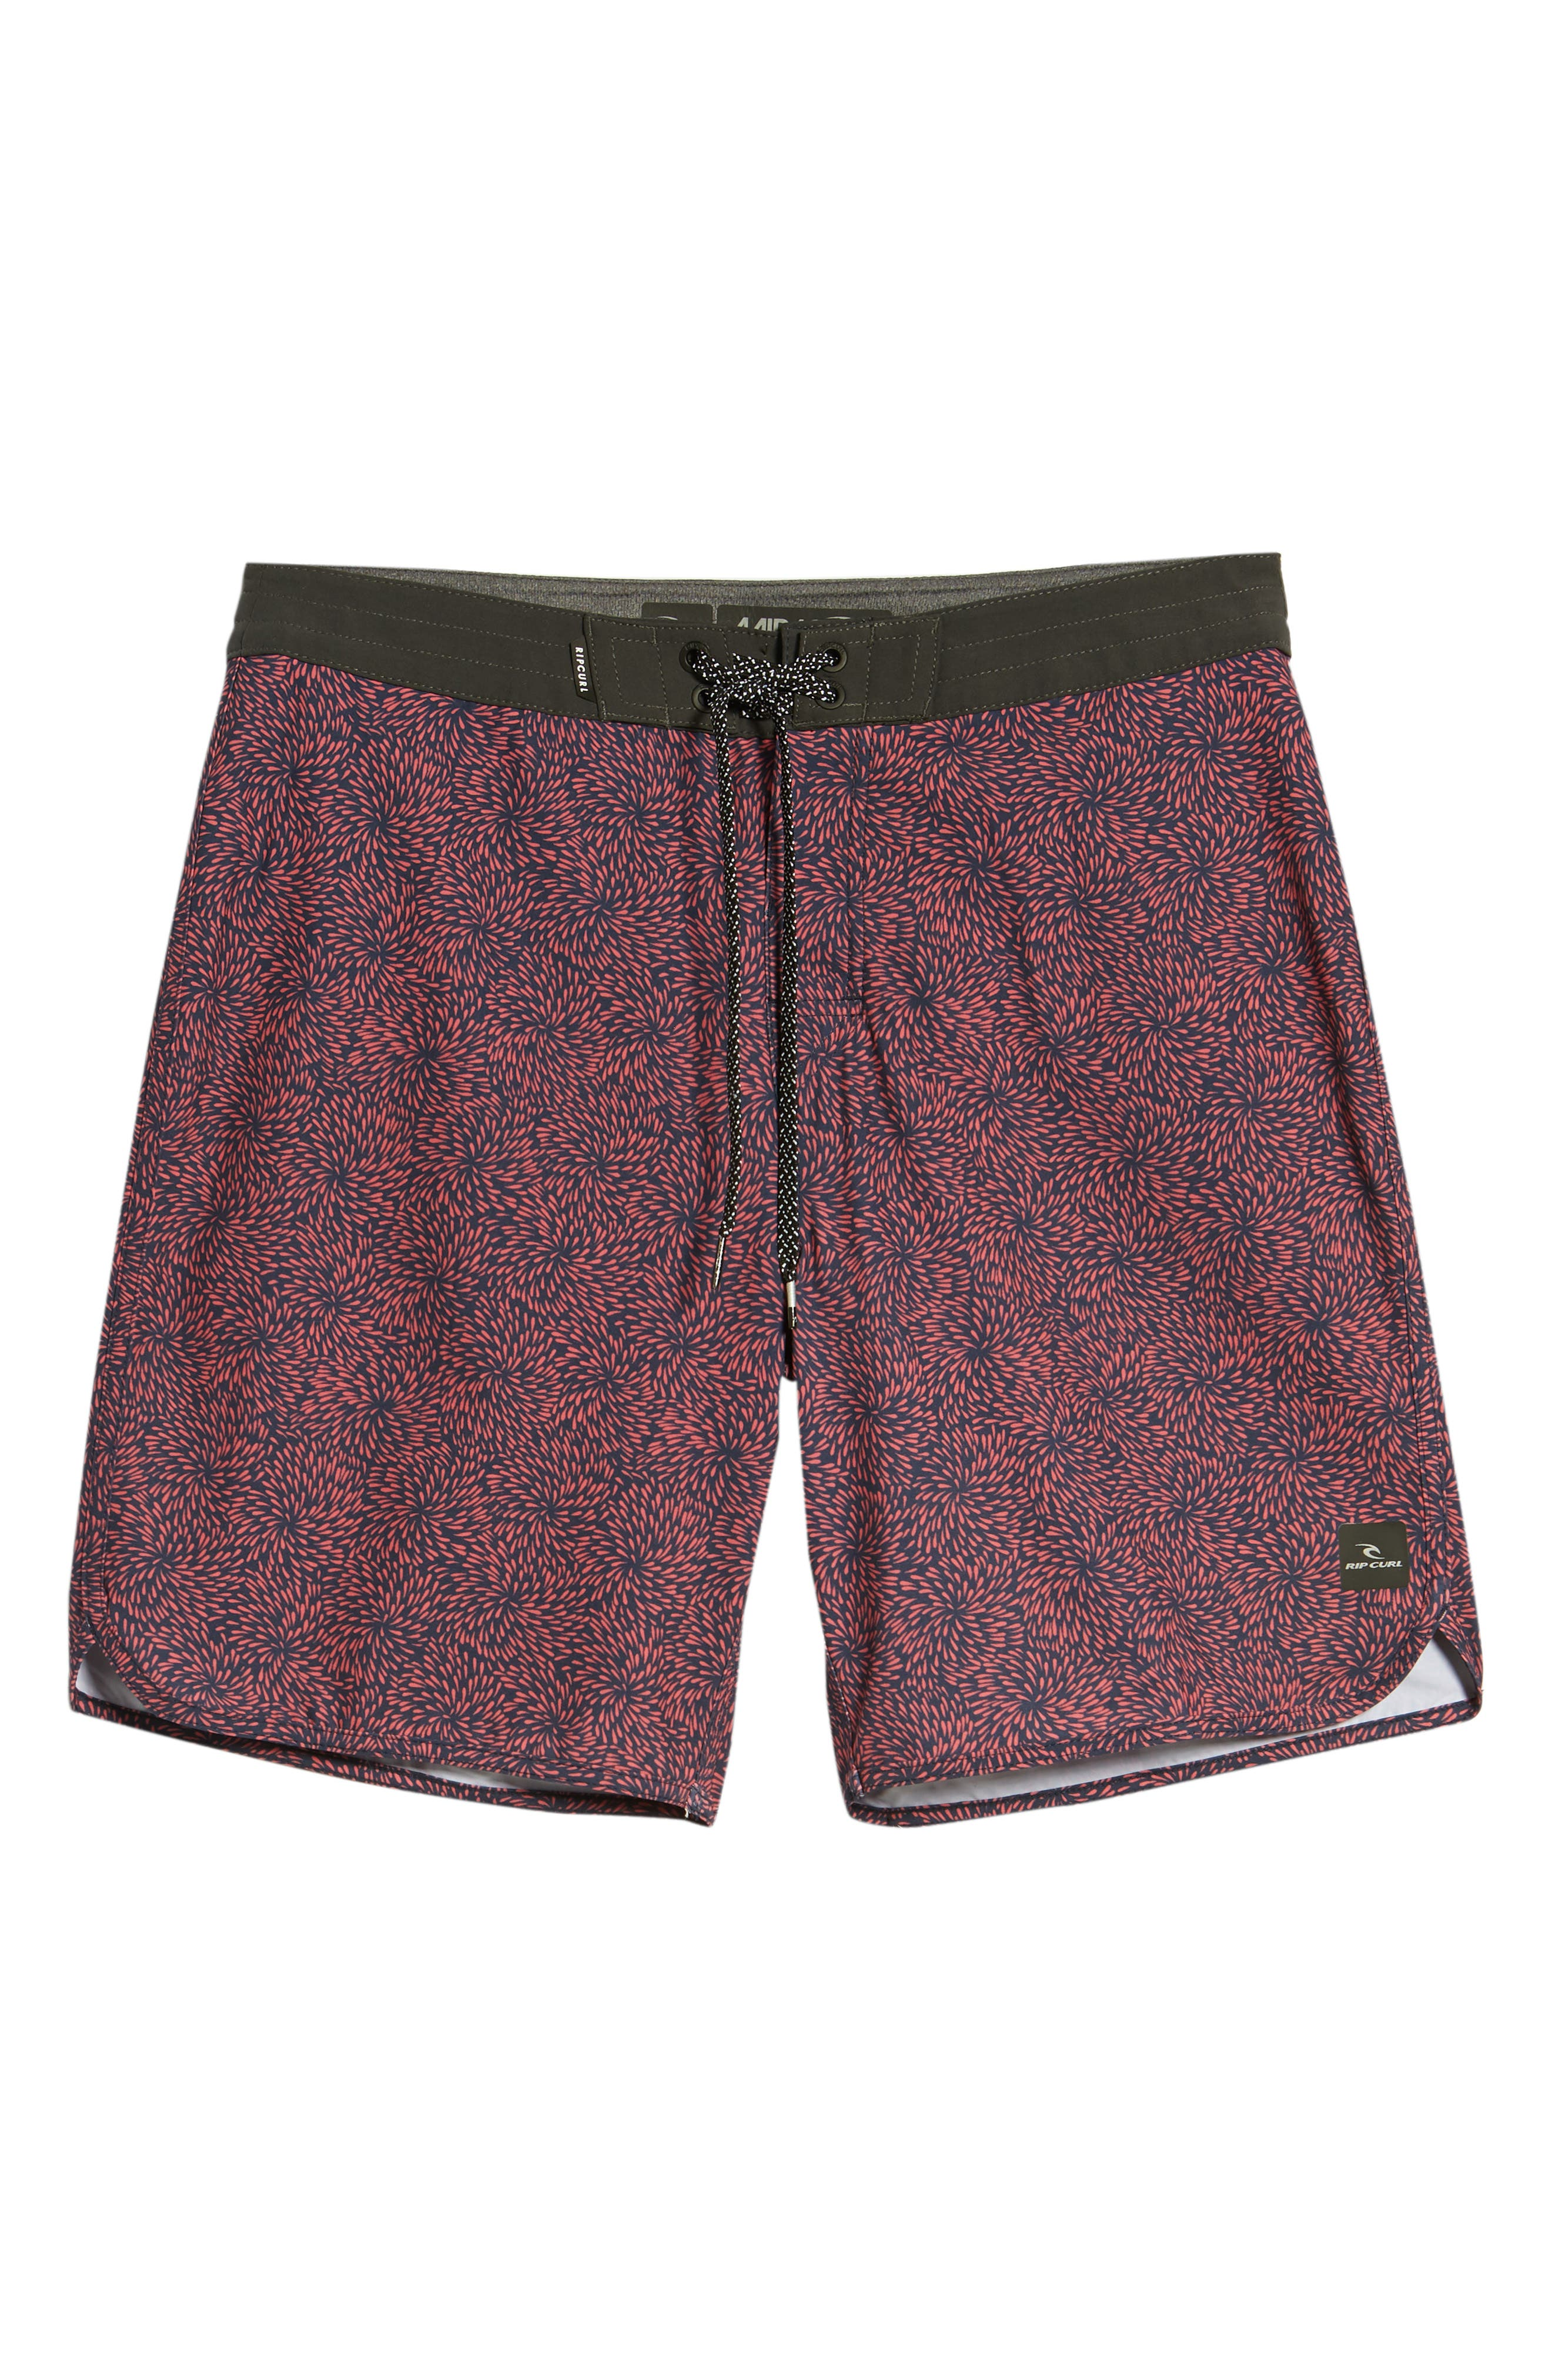 Mirage Conner Spin Out Board Shorts,                             Alternate thumbnail 6, color,                             600